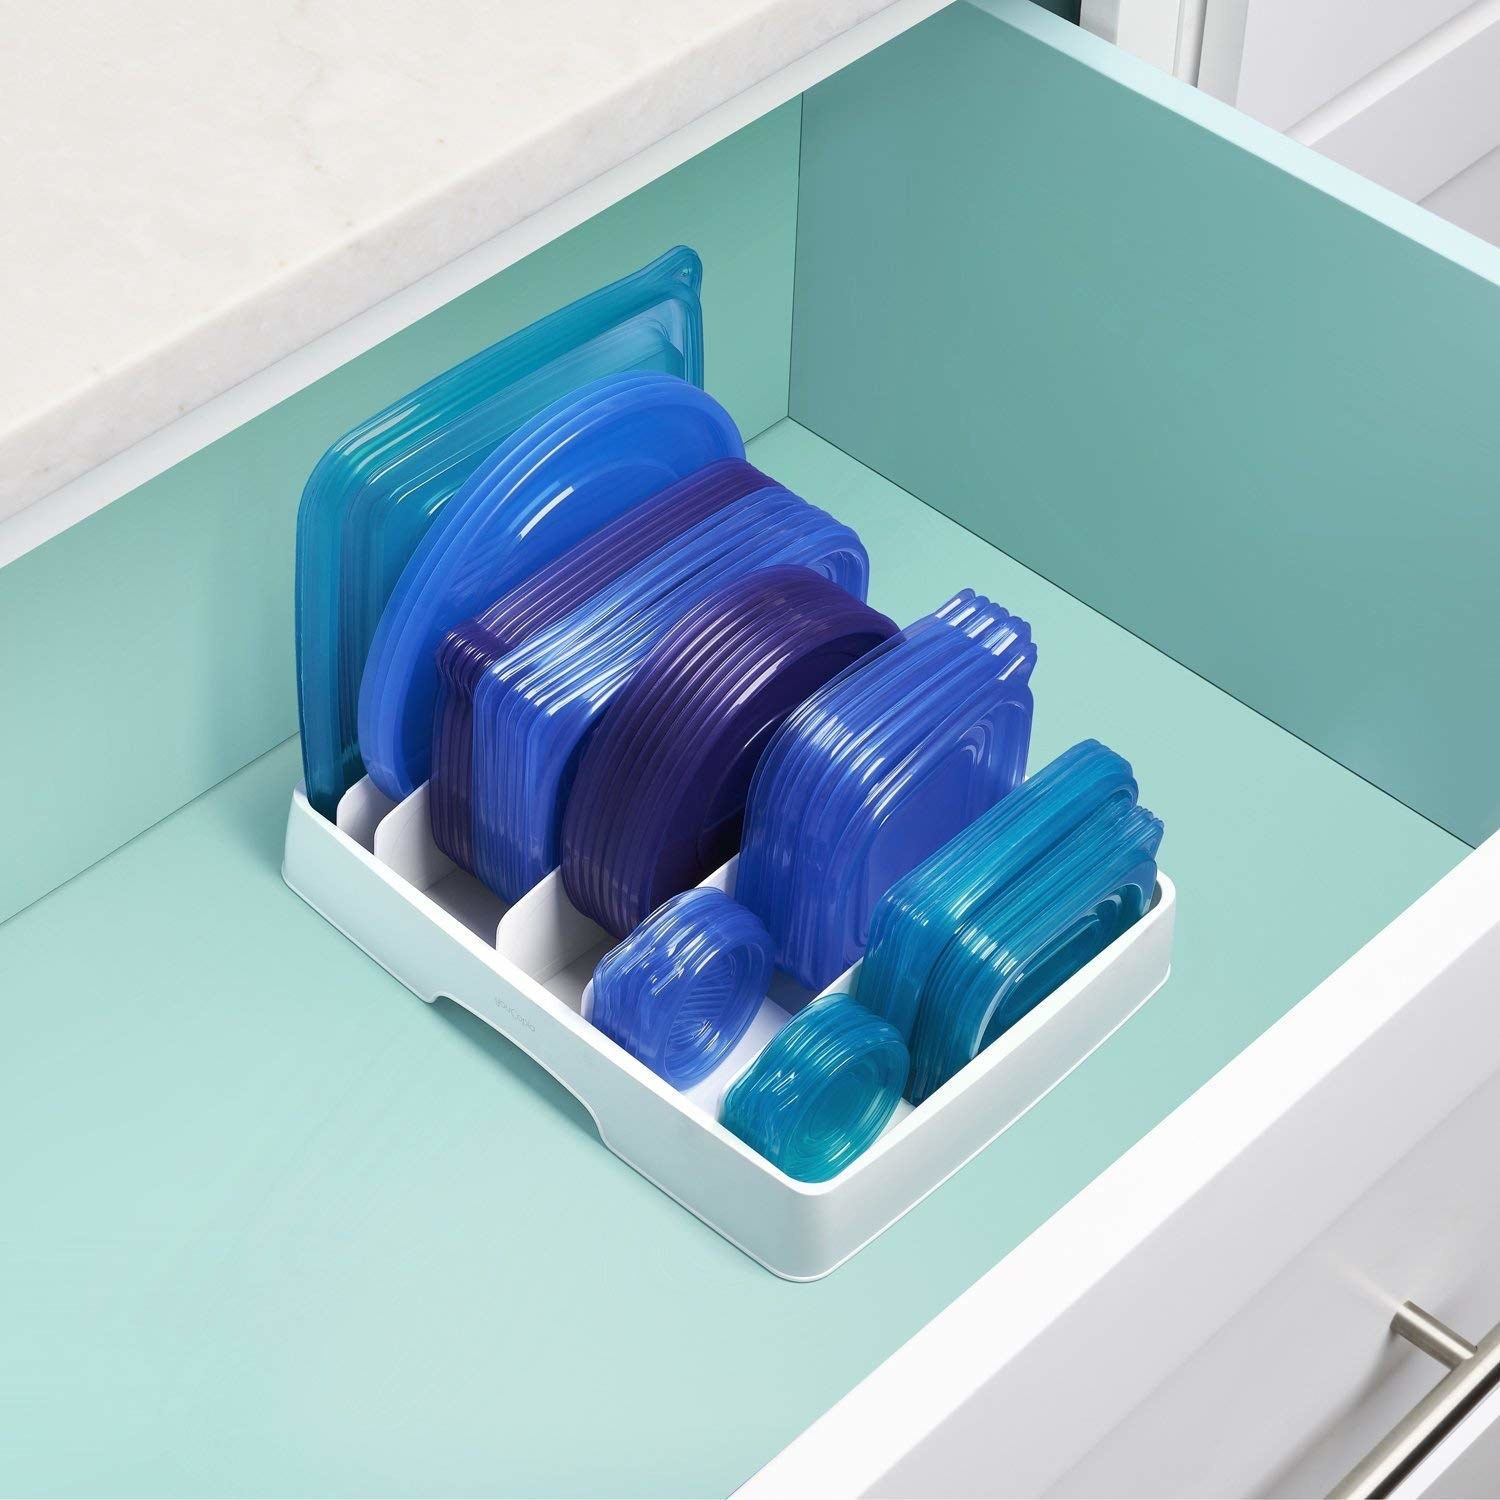 An open drawer containing the lid organizer